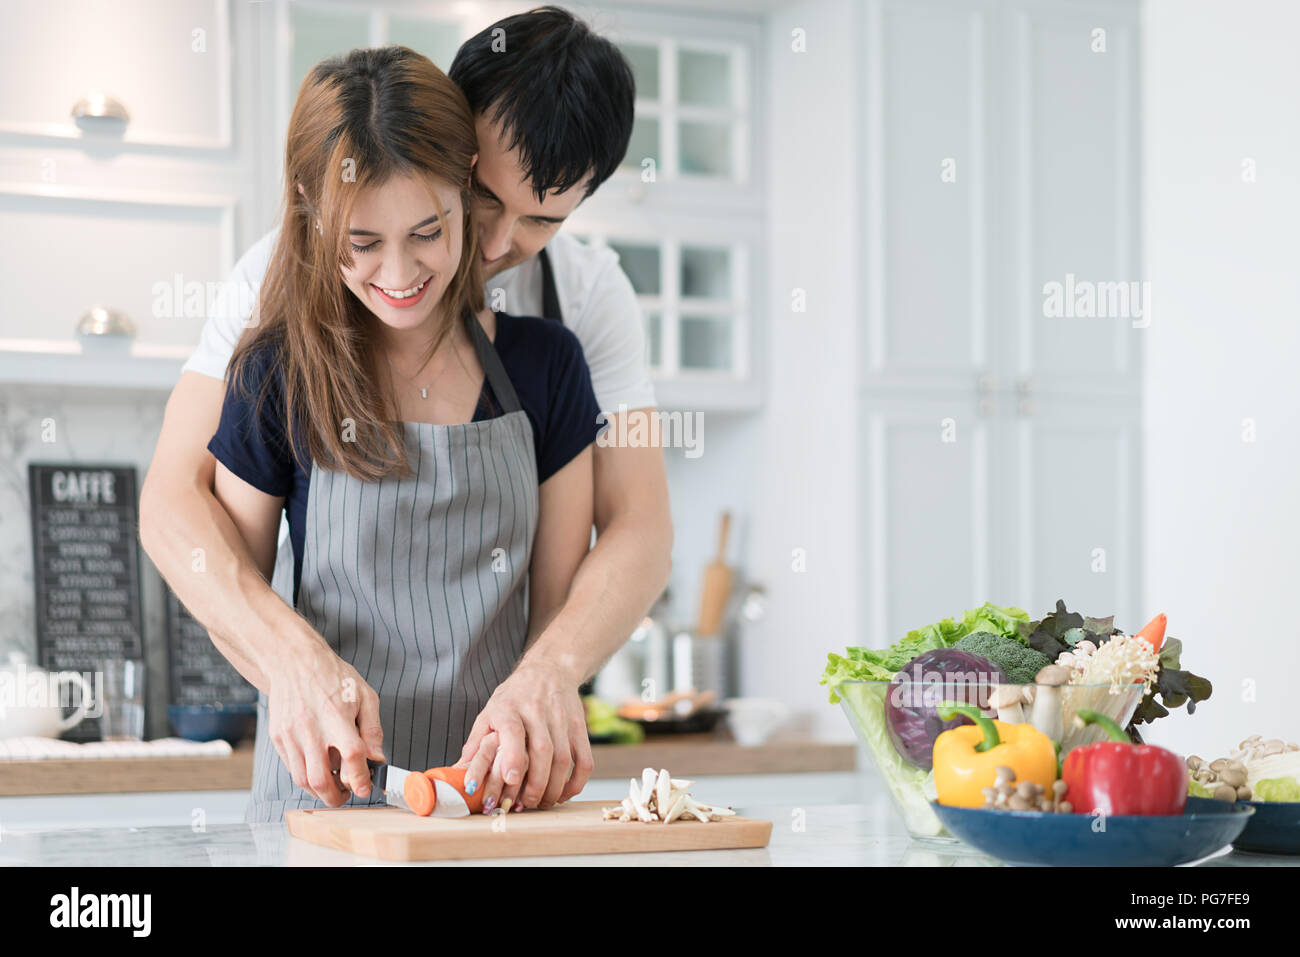 Young beautiful couple in kitchen. Family of two preparing food. Couple making delicious salad. Cooking hobby lifestyle concept. - Stock Image